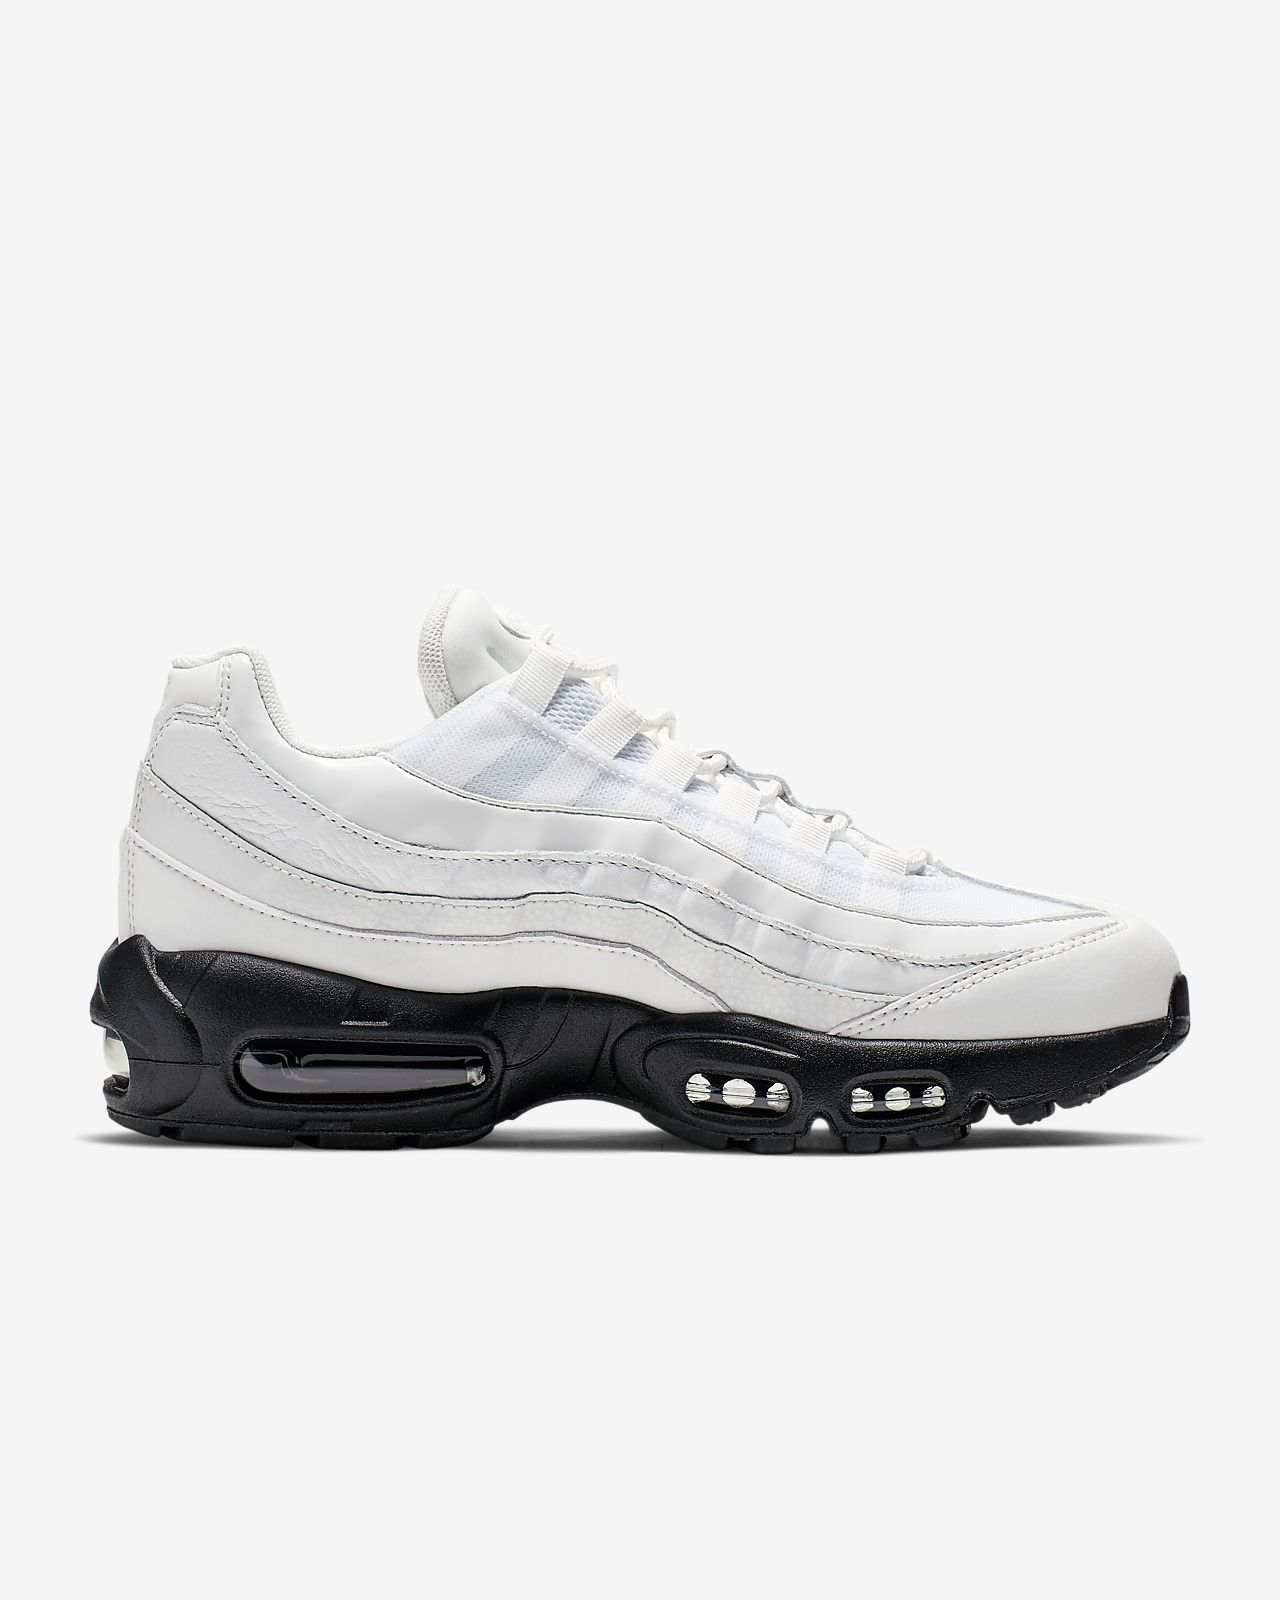 check out 1c586 2623e Low Resolution Nike Air Max 95 SE Women s Shoe Nike Air Max 95 SE Women s  Shoe